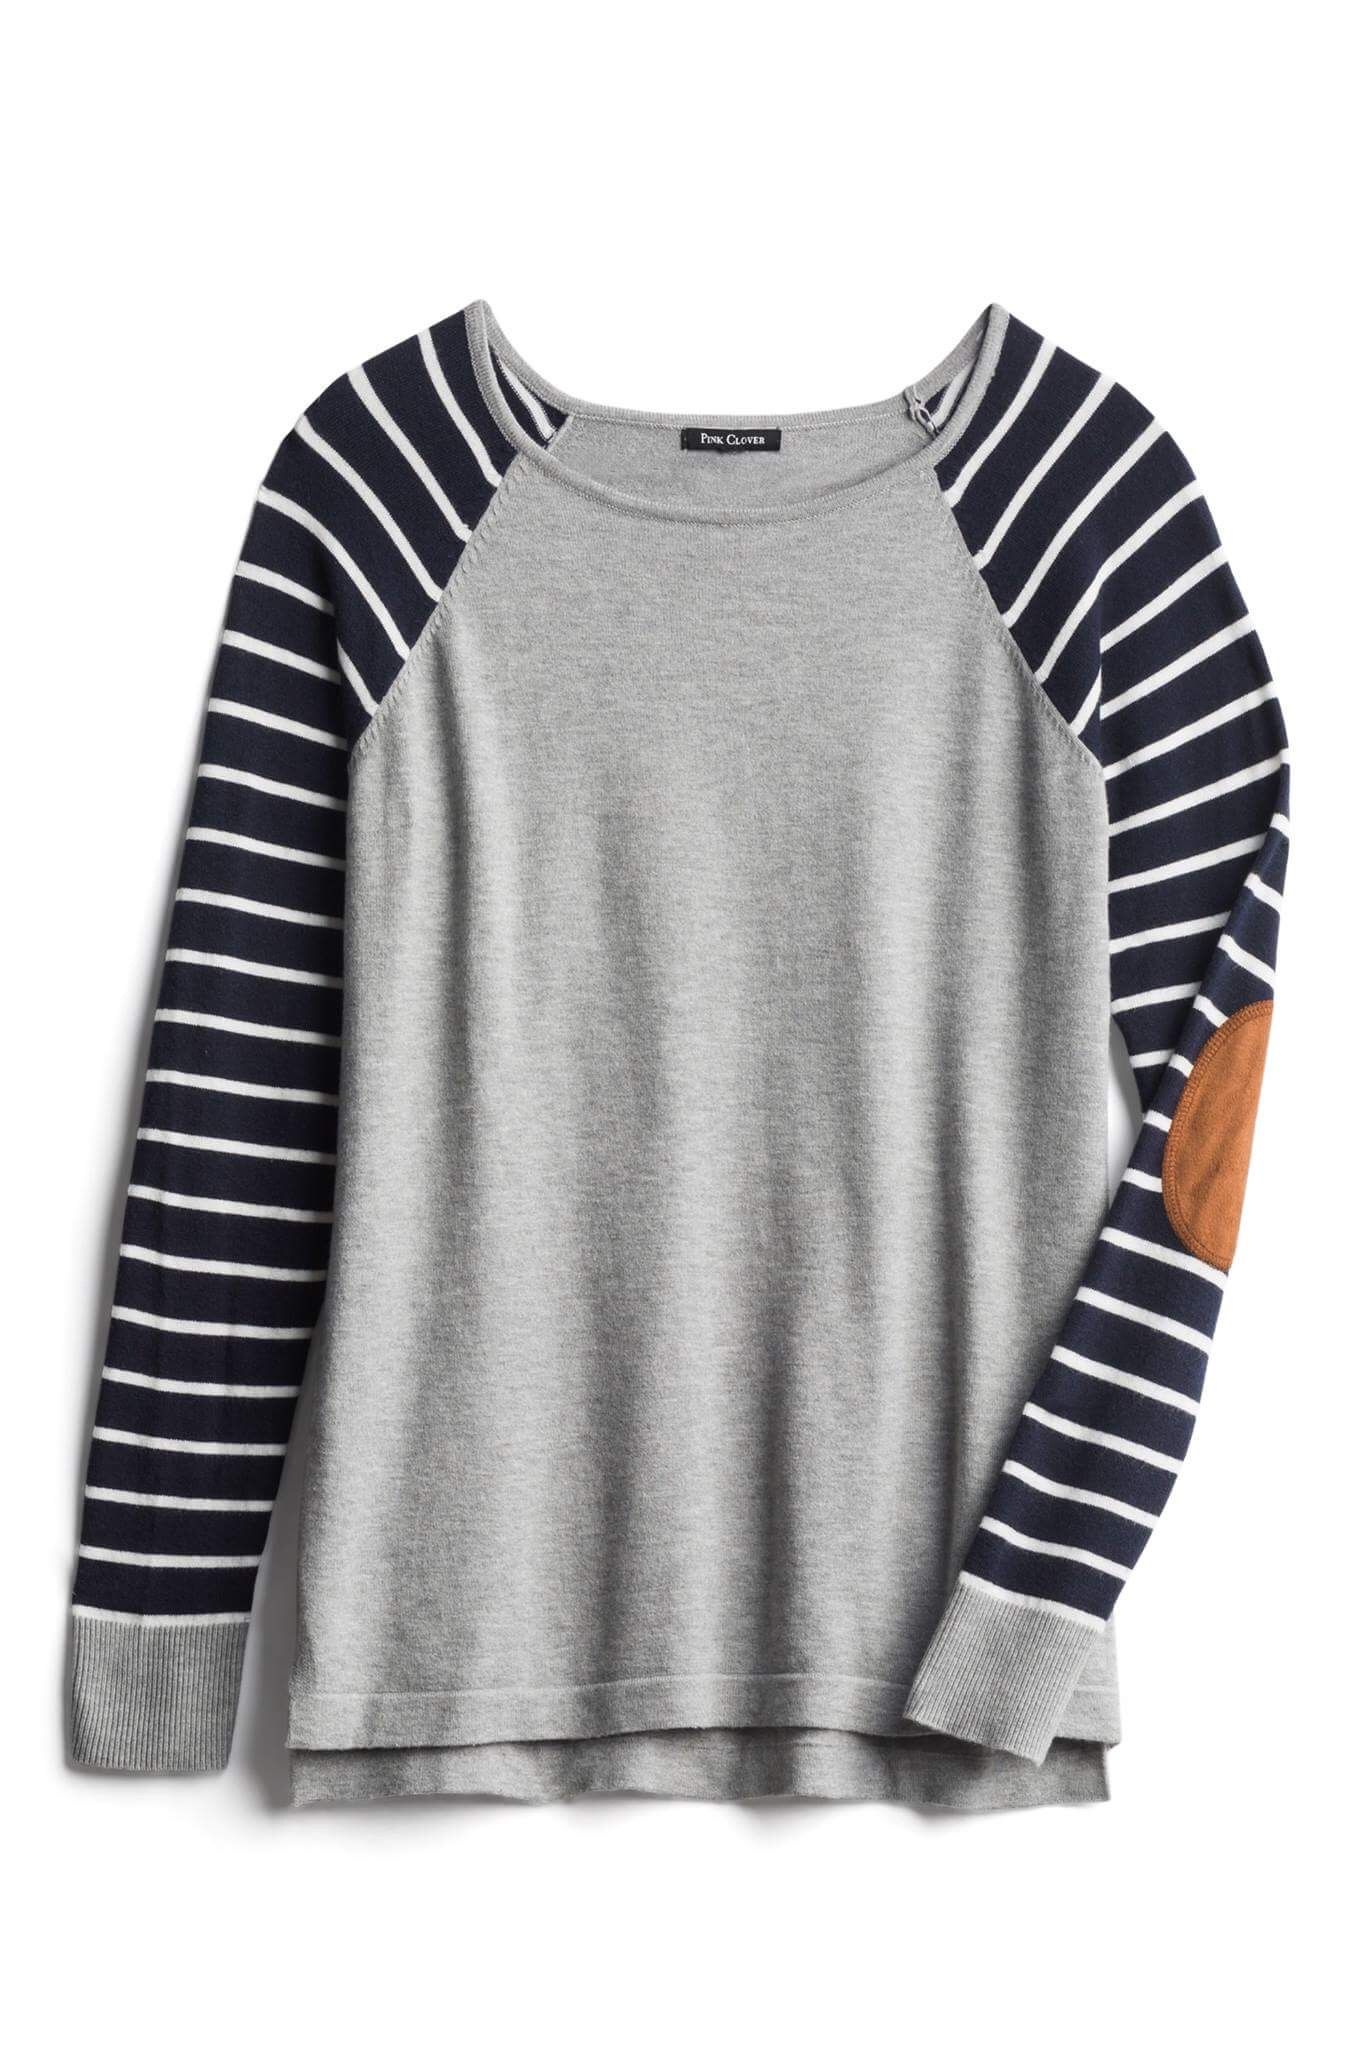 Wear you Trendswould a summer sweater